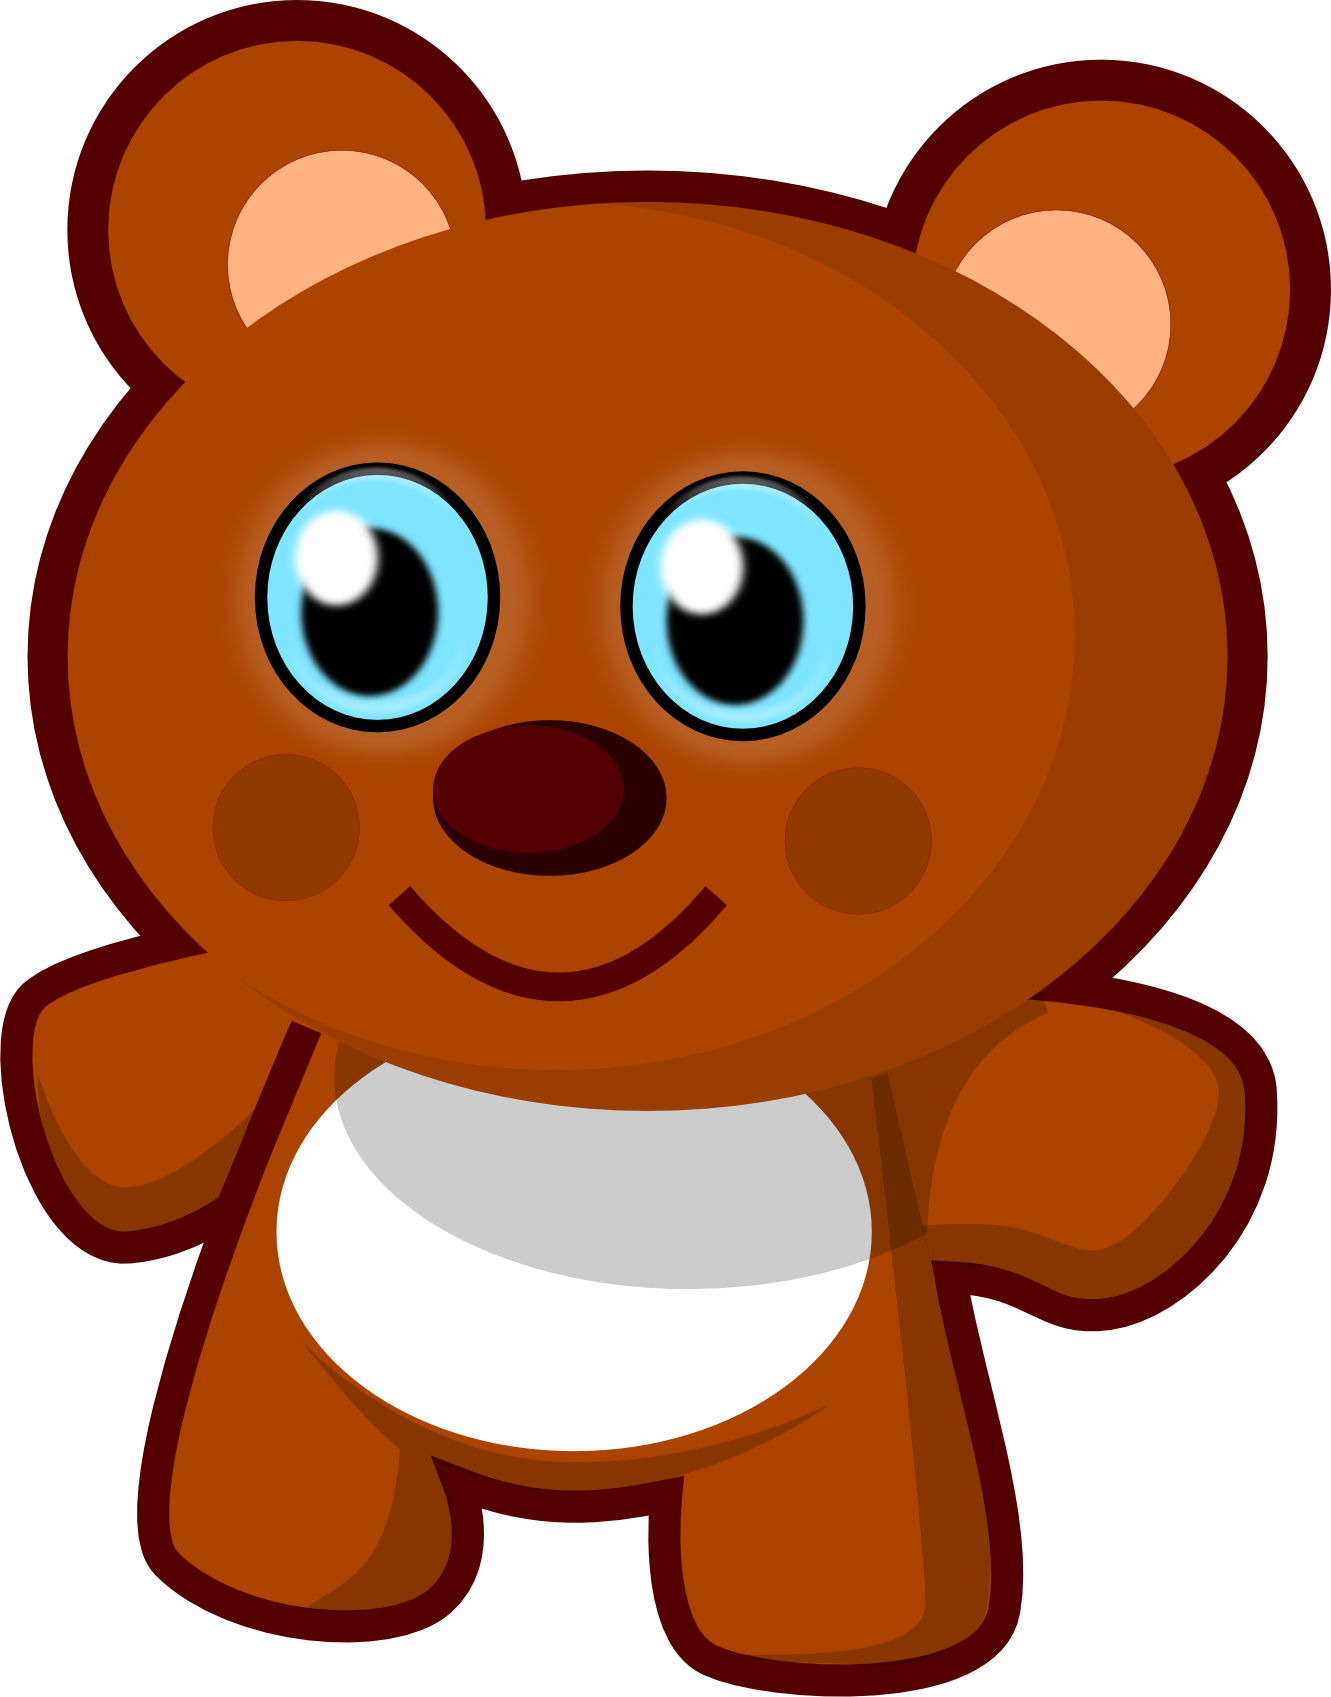 graphic royalty free library Angry at getdrawings com. Bear clipart face